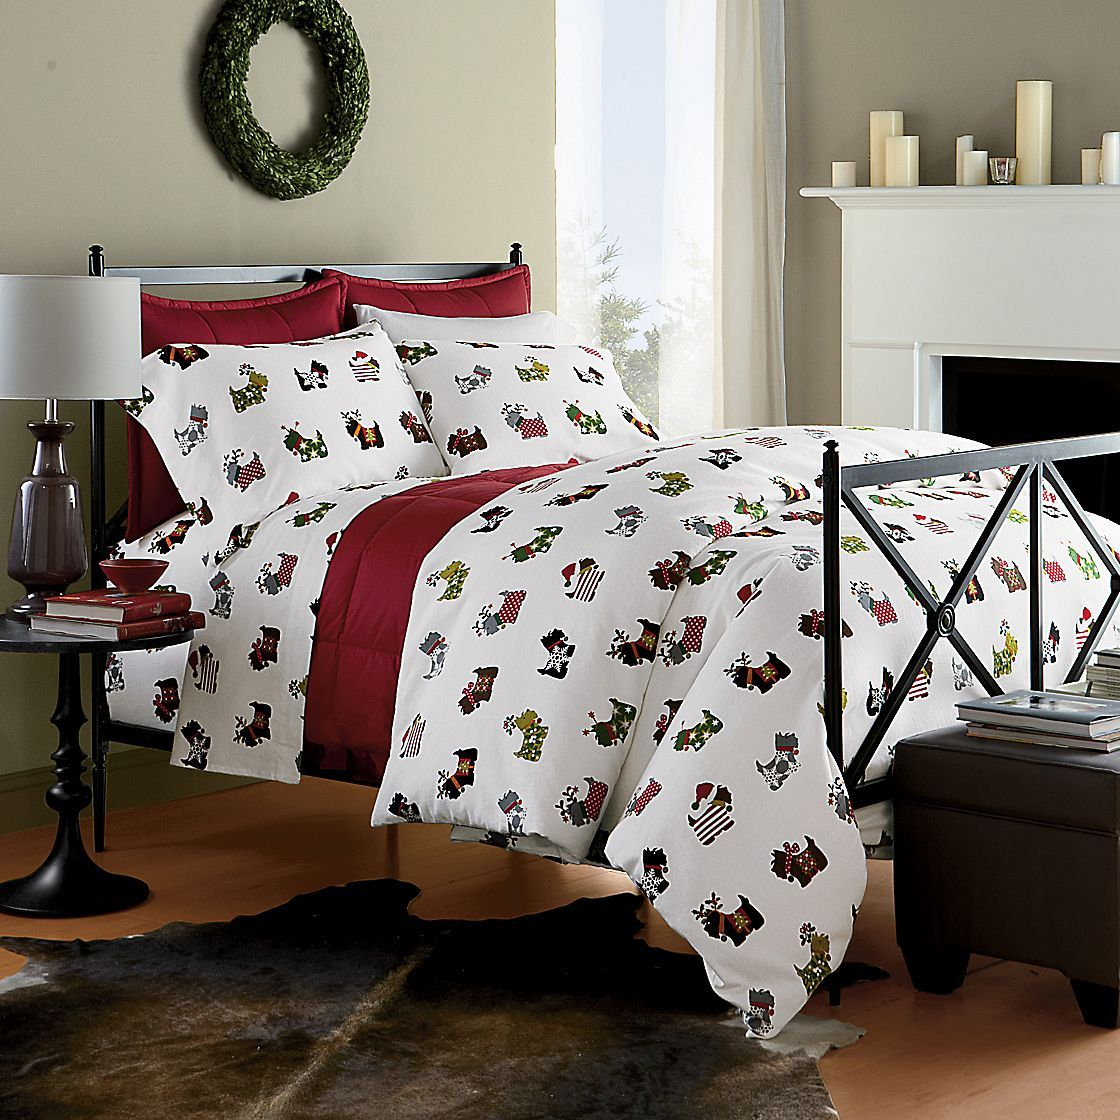 Scottie Flannel Bedding The Company Store Home bedroom